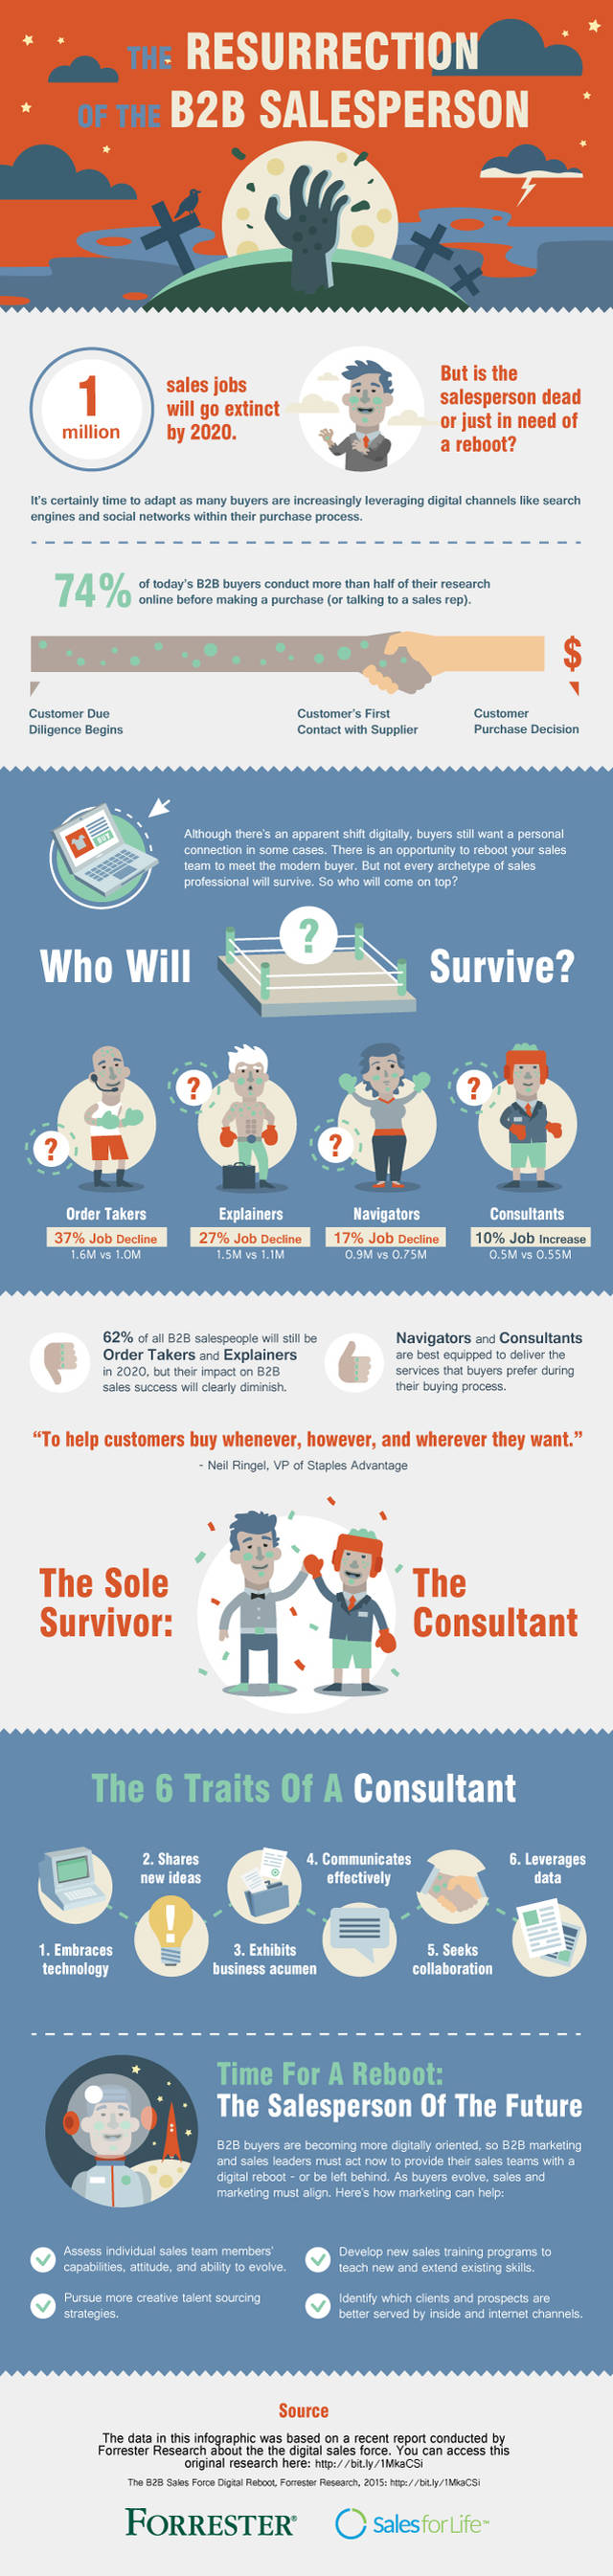 The resurrection of the b2b salesperson infographic forrester